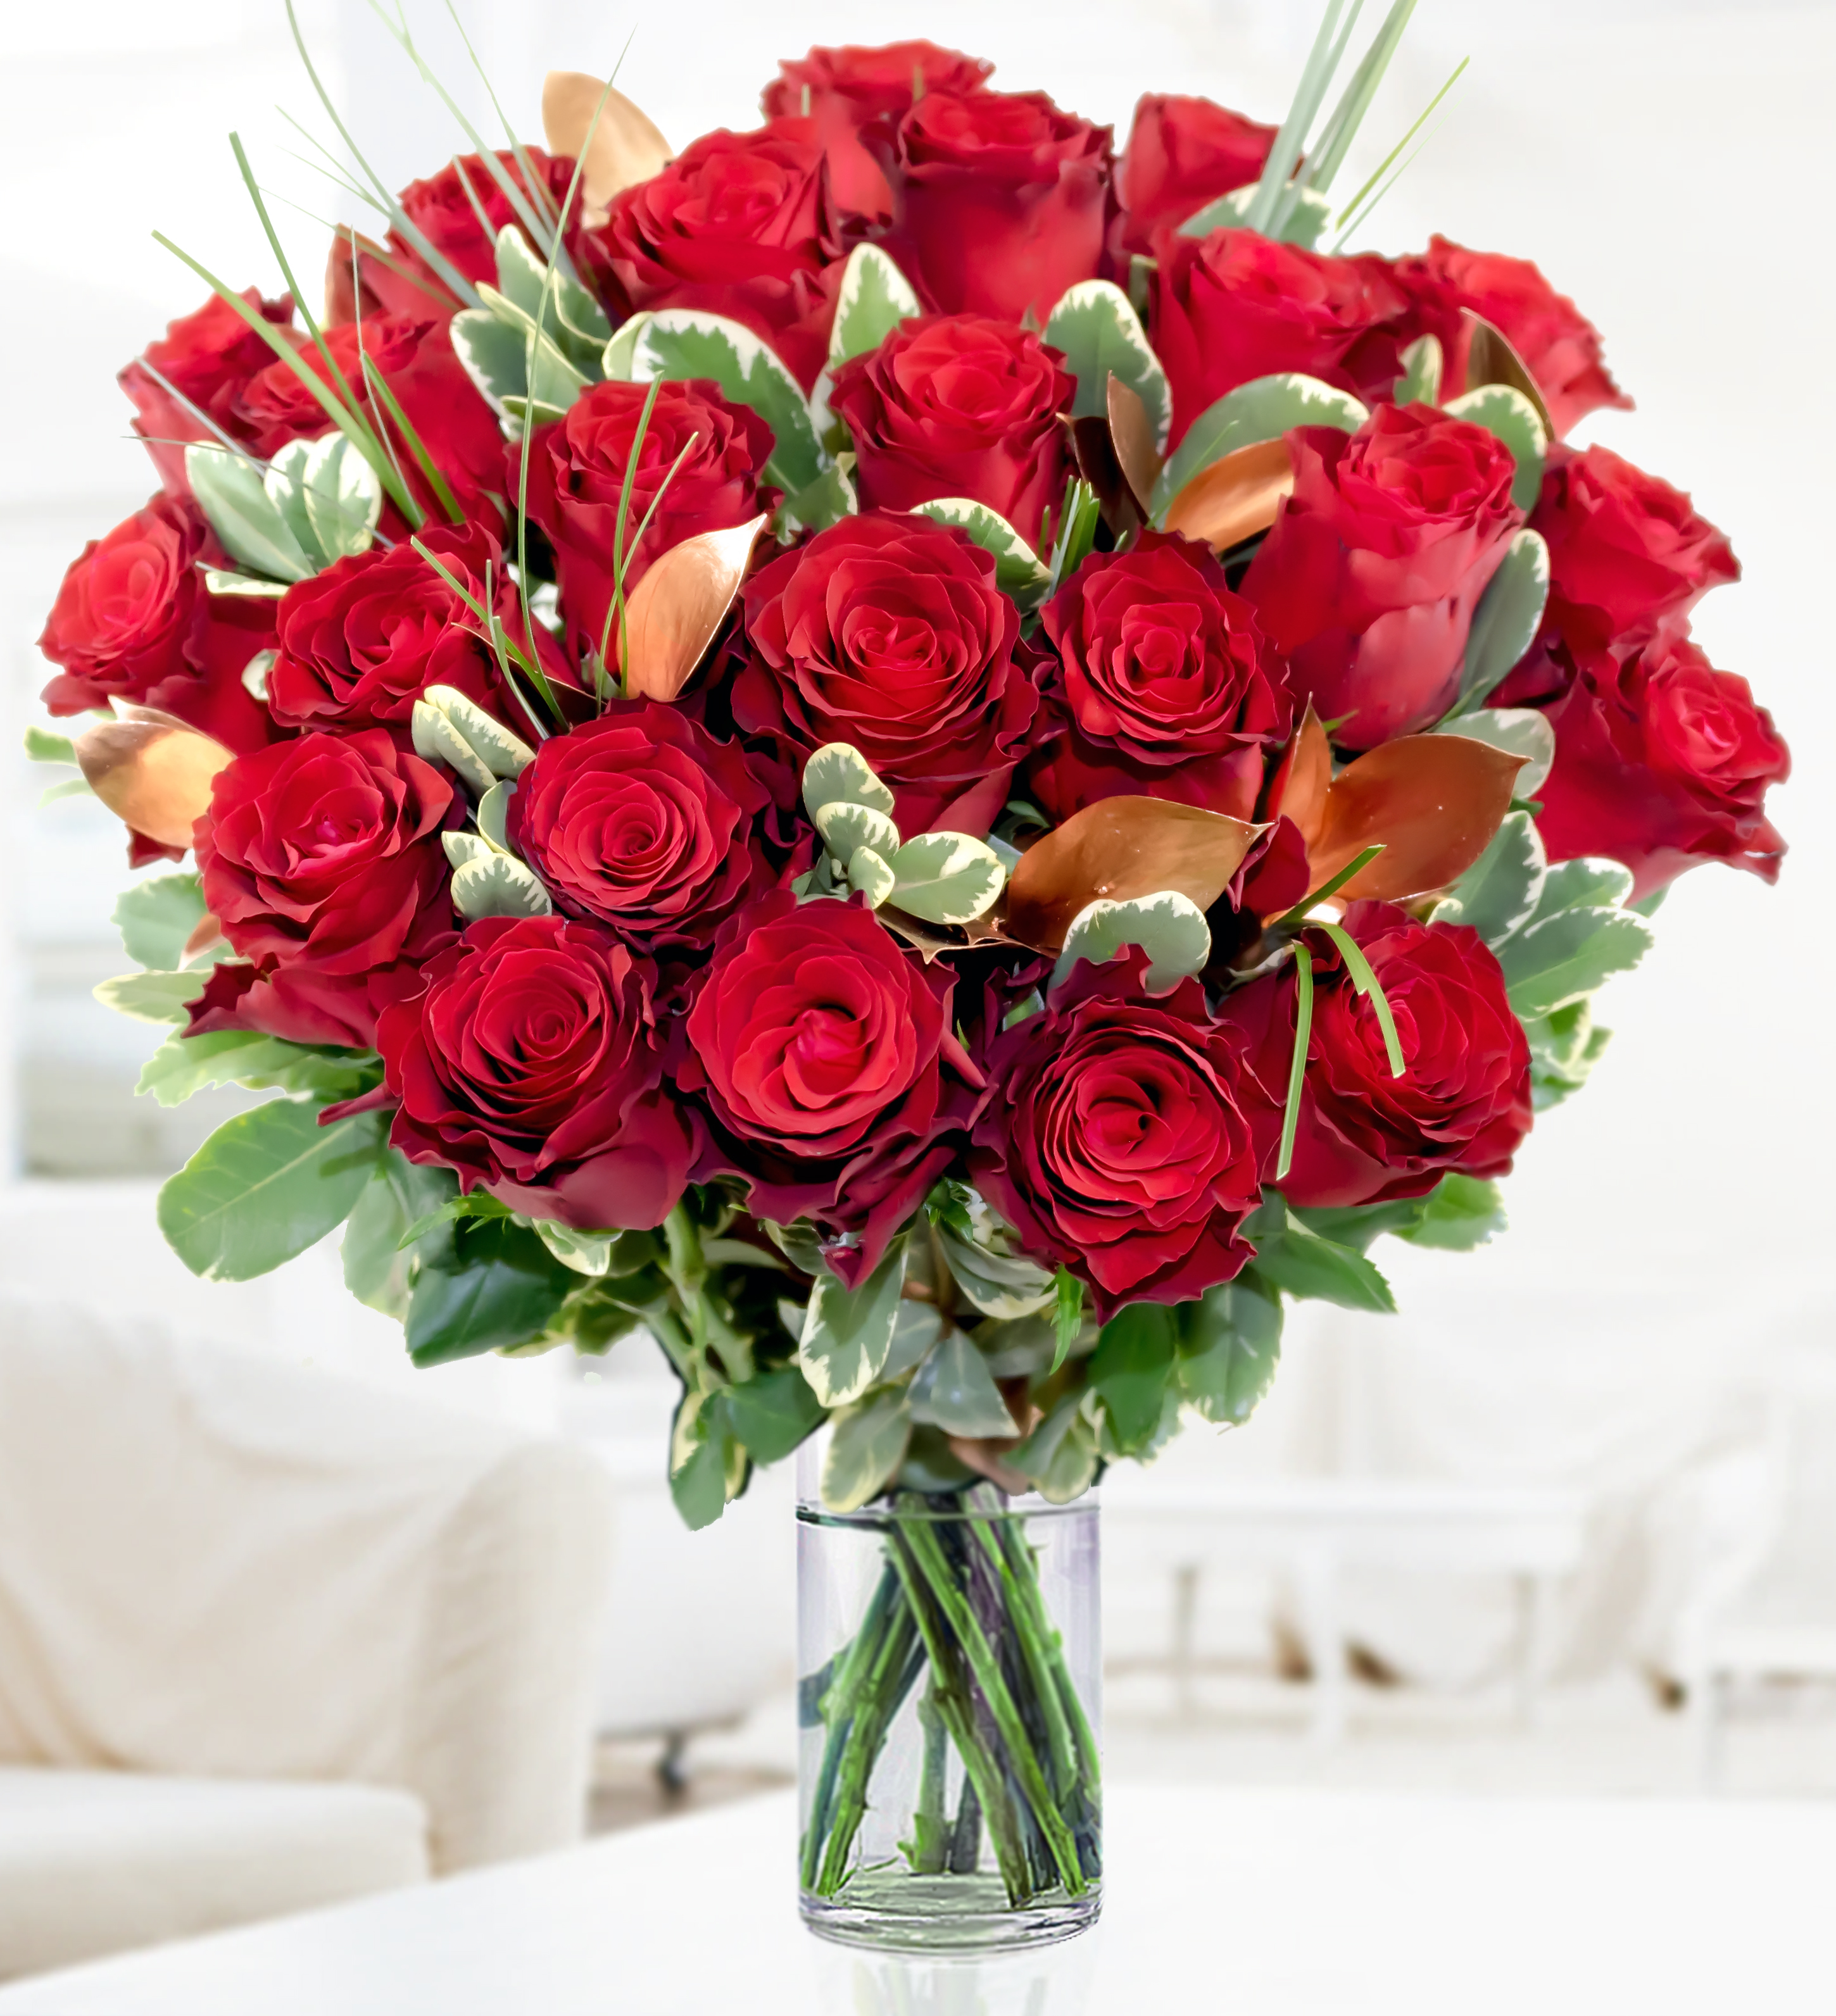 Romantic Valentines Day flowers for your wife - Flower Press